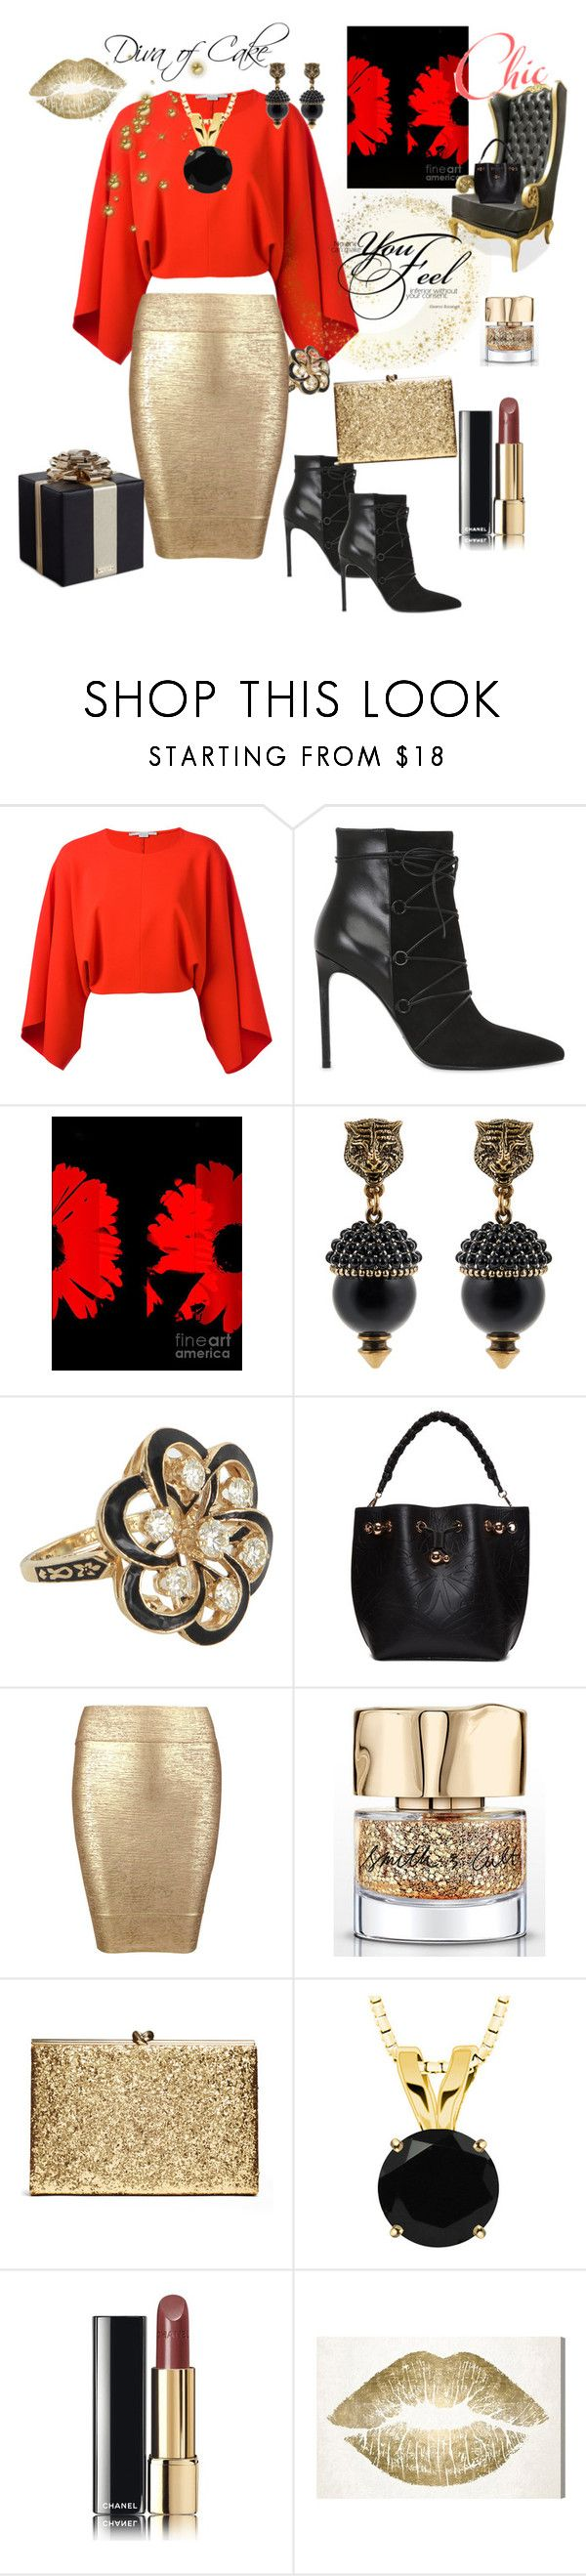 "Repin by www.sandragabriel.com  ""red black & gold"" by Diva of Cake on Polyvore featuring STELLA McCARTNEY, Yves Saint Laurent, Gucci, Vintage, Sophia Webster, Posh Girl, Smith & Cult, Chanel, Oliver Gal Artist Co. and Kate Spade"